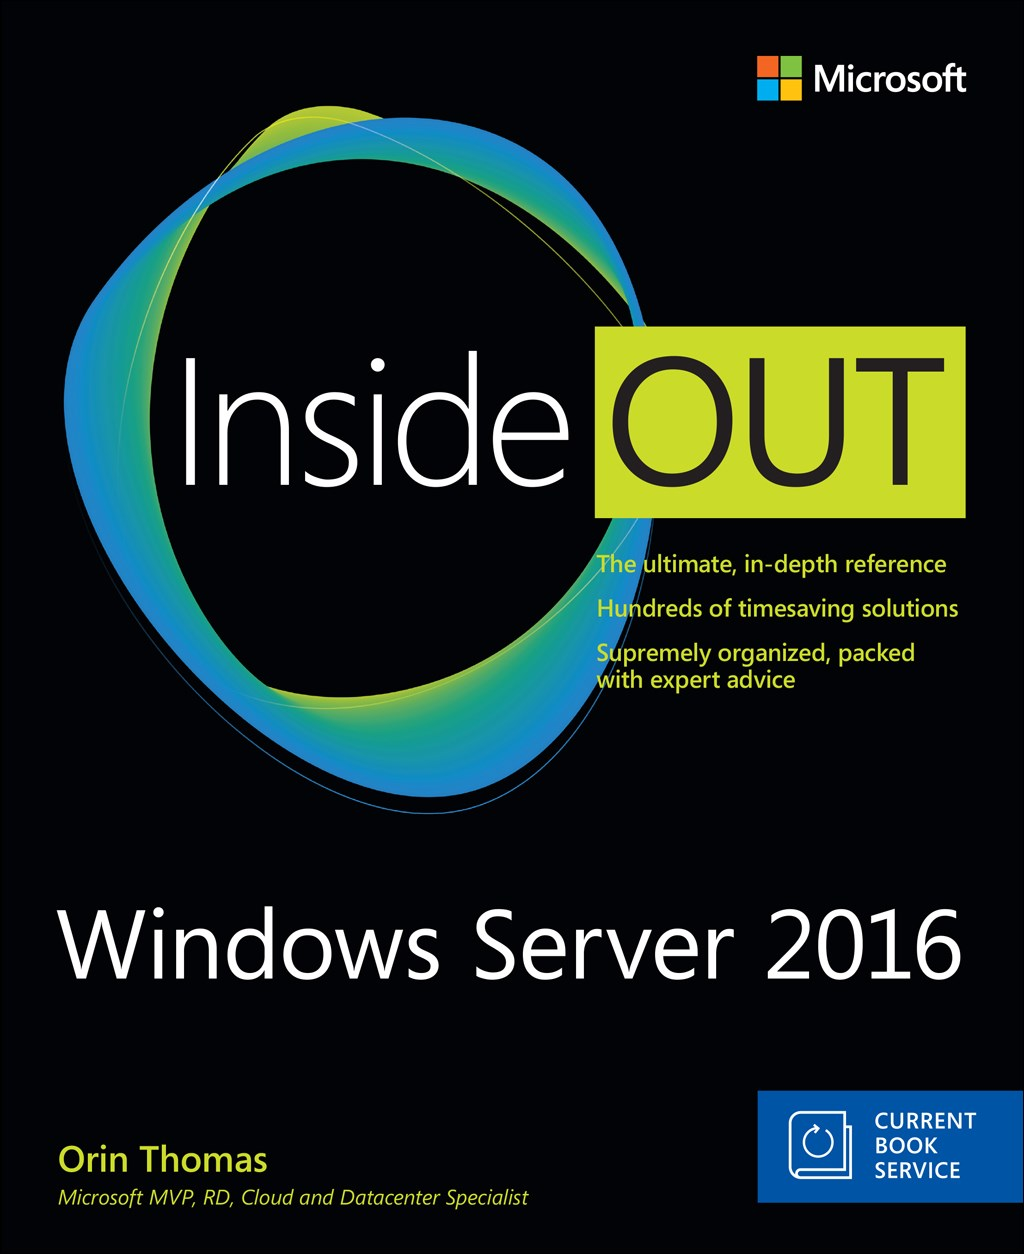 Windows Server 2016 Inside Out (includes Current Book Service)